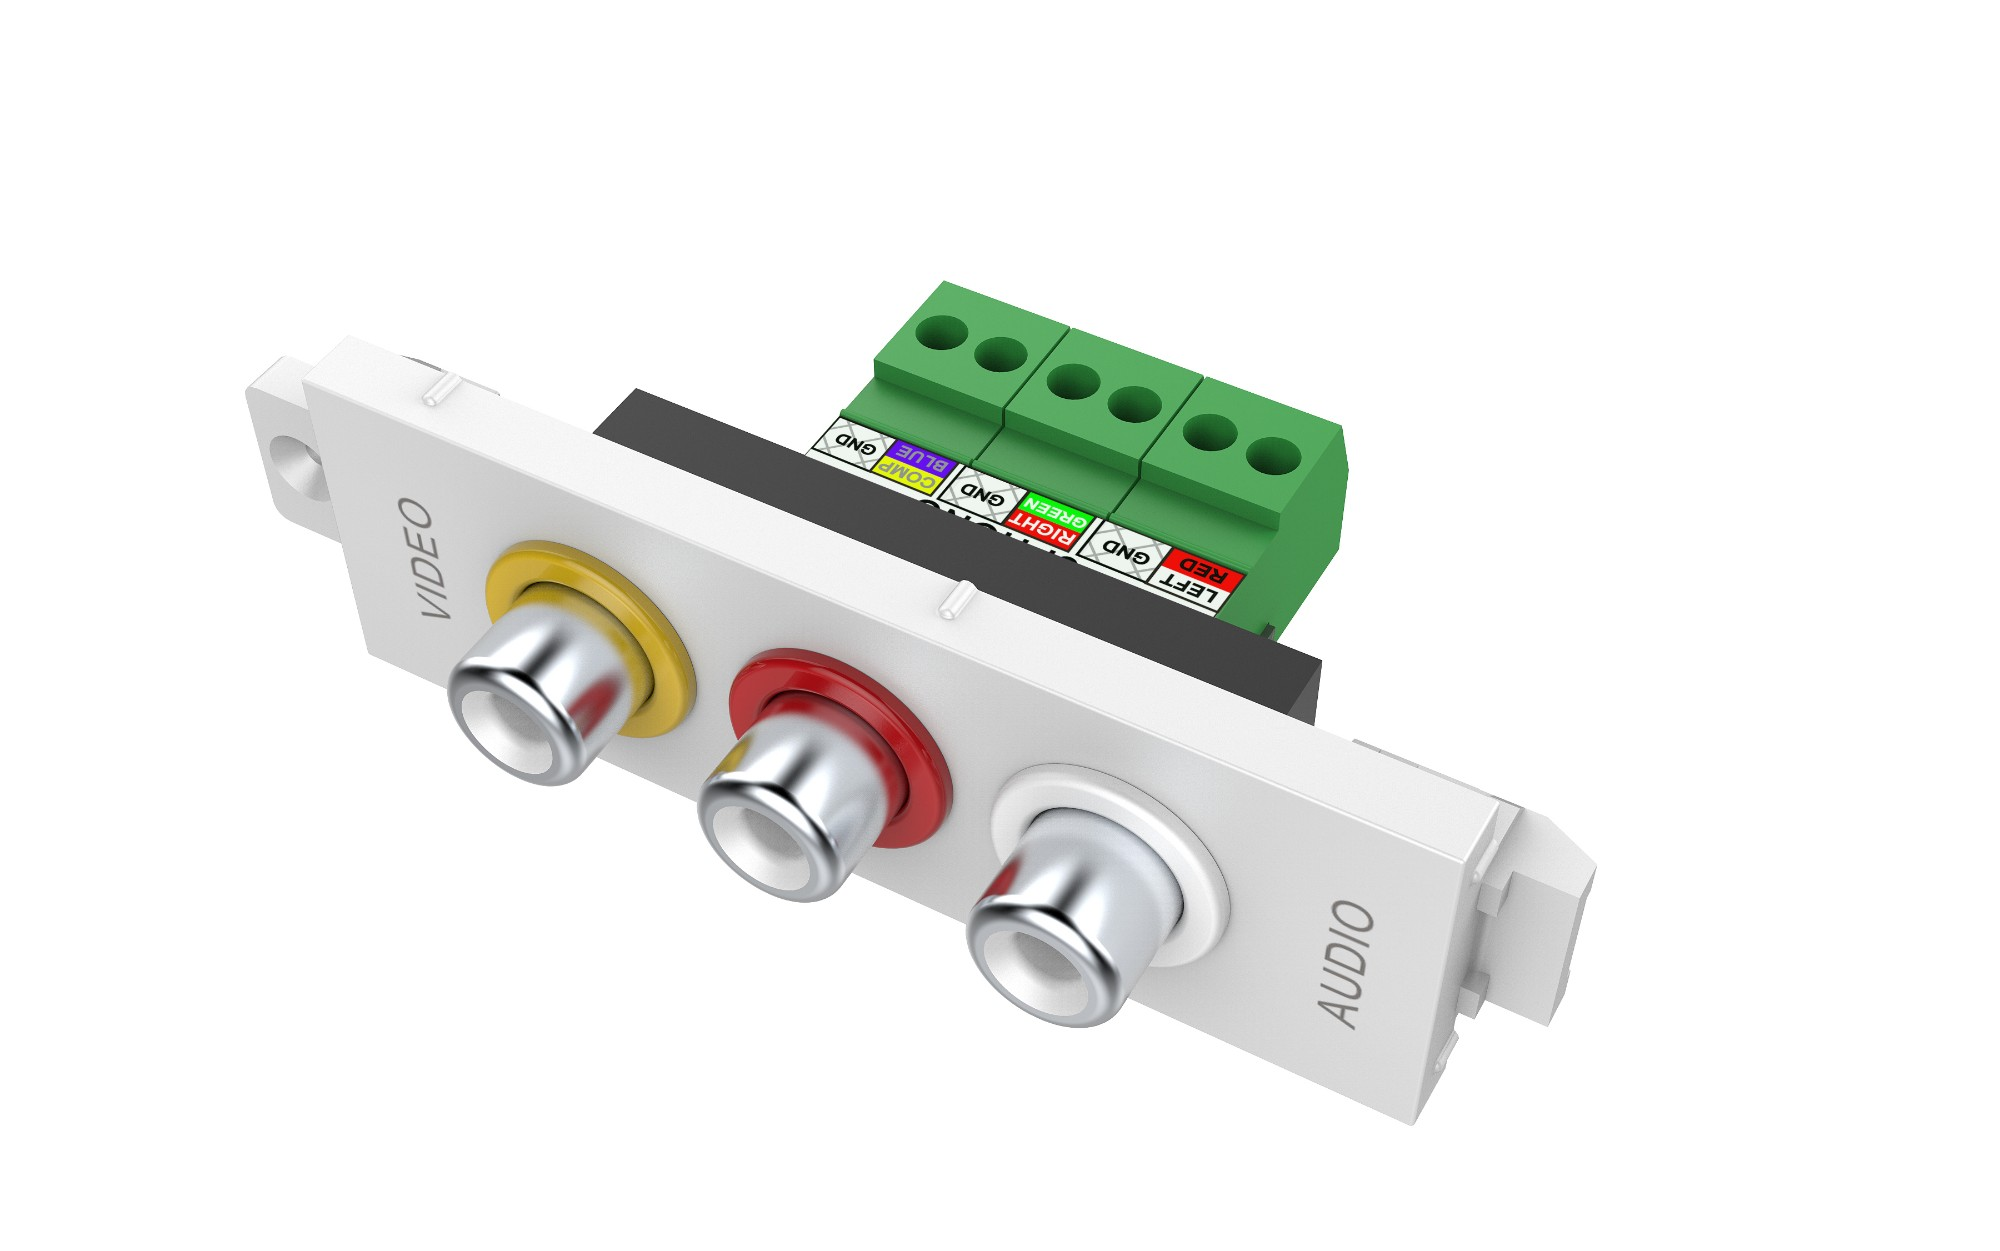 V3 Module 3-phono This 3-phono Has Interchangeable Coloured Rings